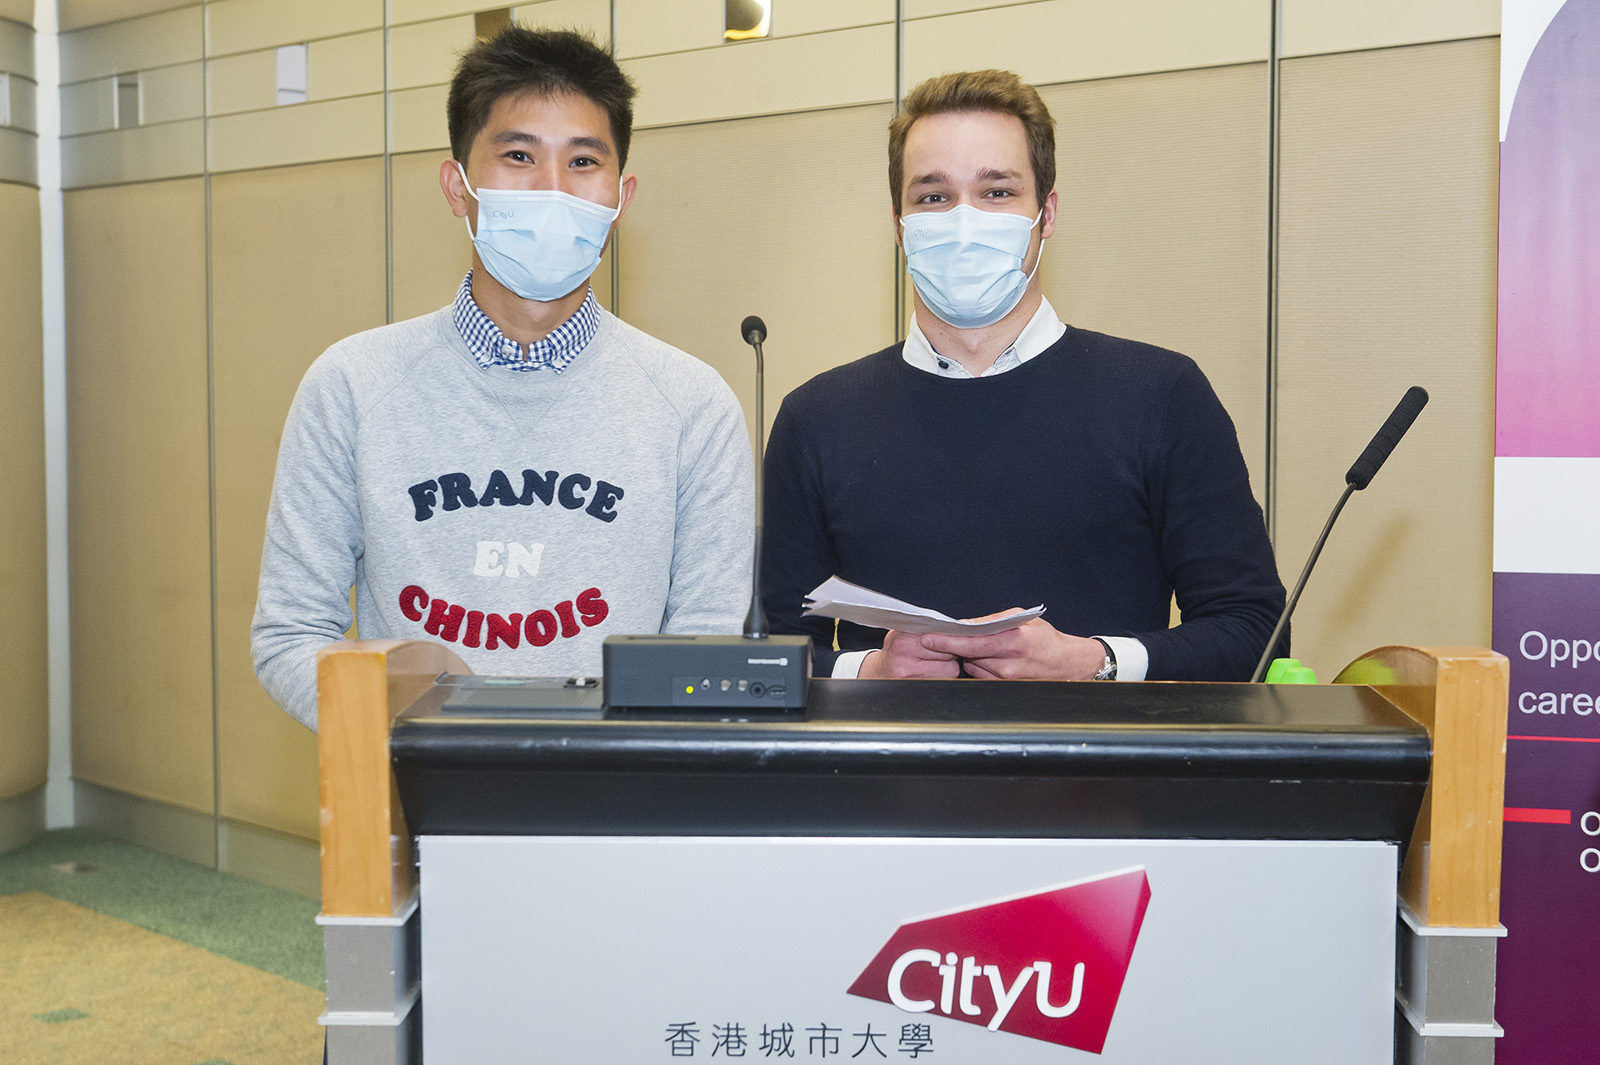 The MCs for the event, Valentin Larose and Pascal Chen both agree that Hong Kong seems far busier than France but  students from CityU would appreciate the different pace of life in France.